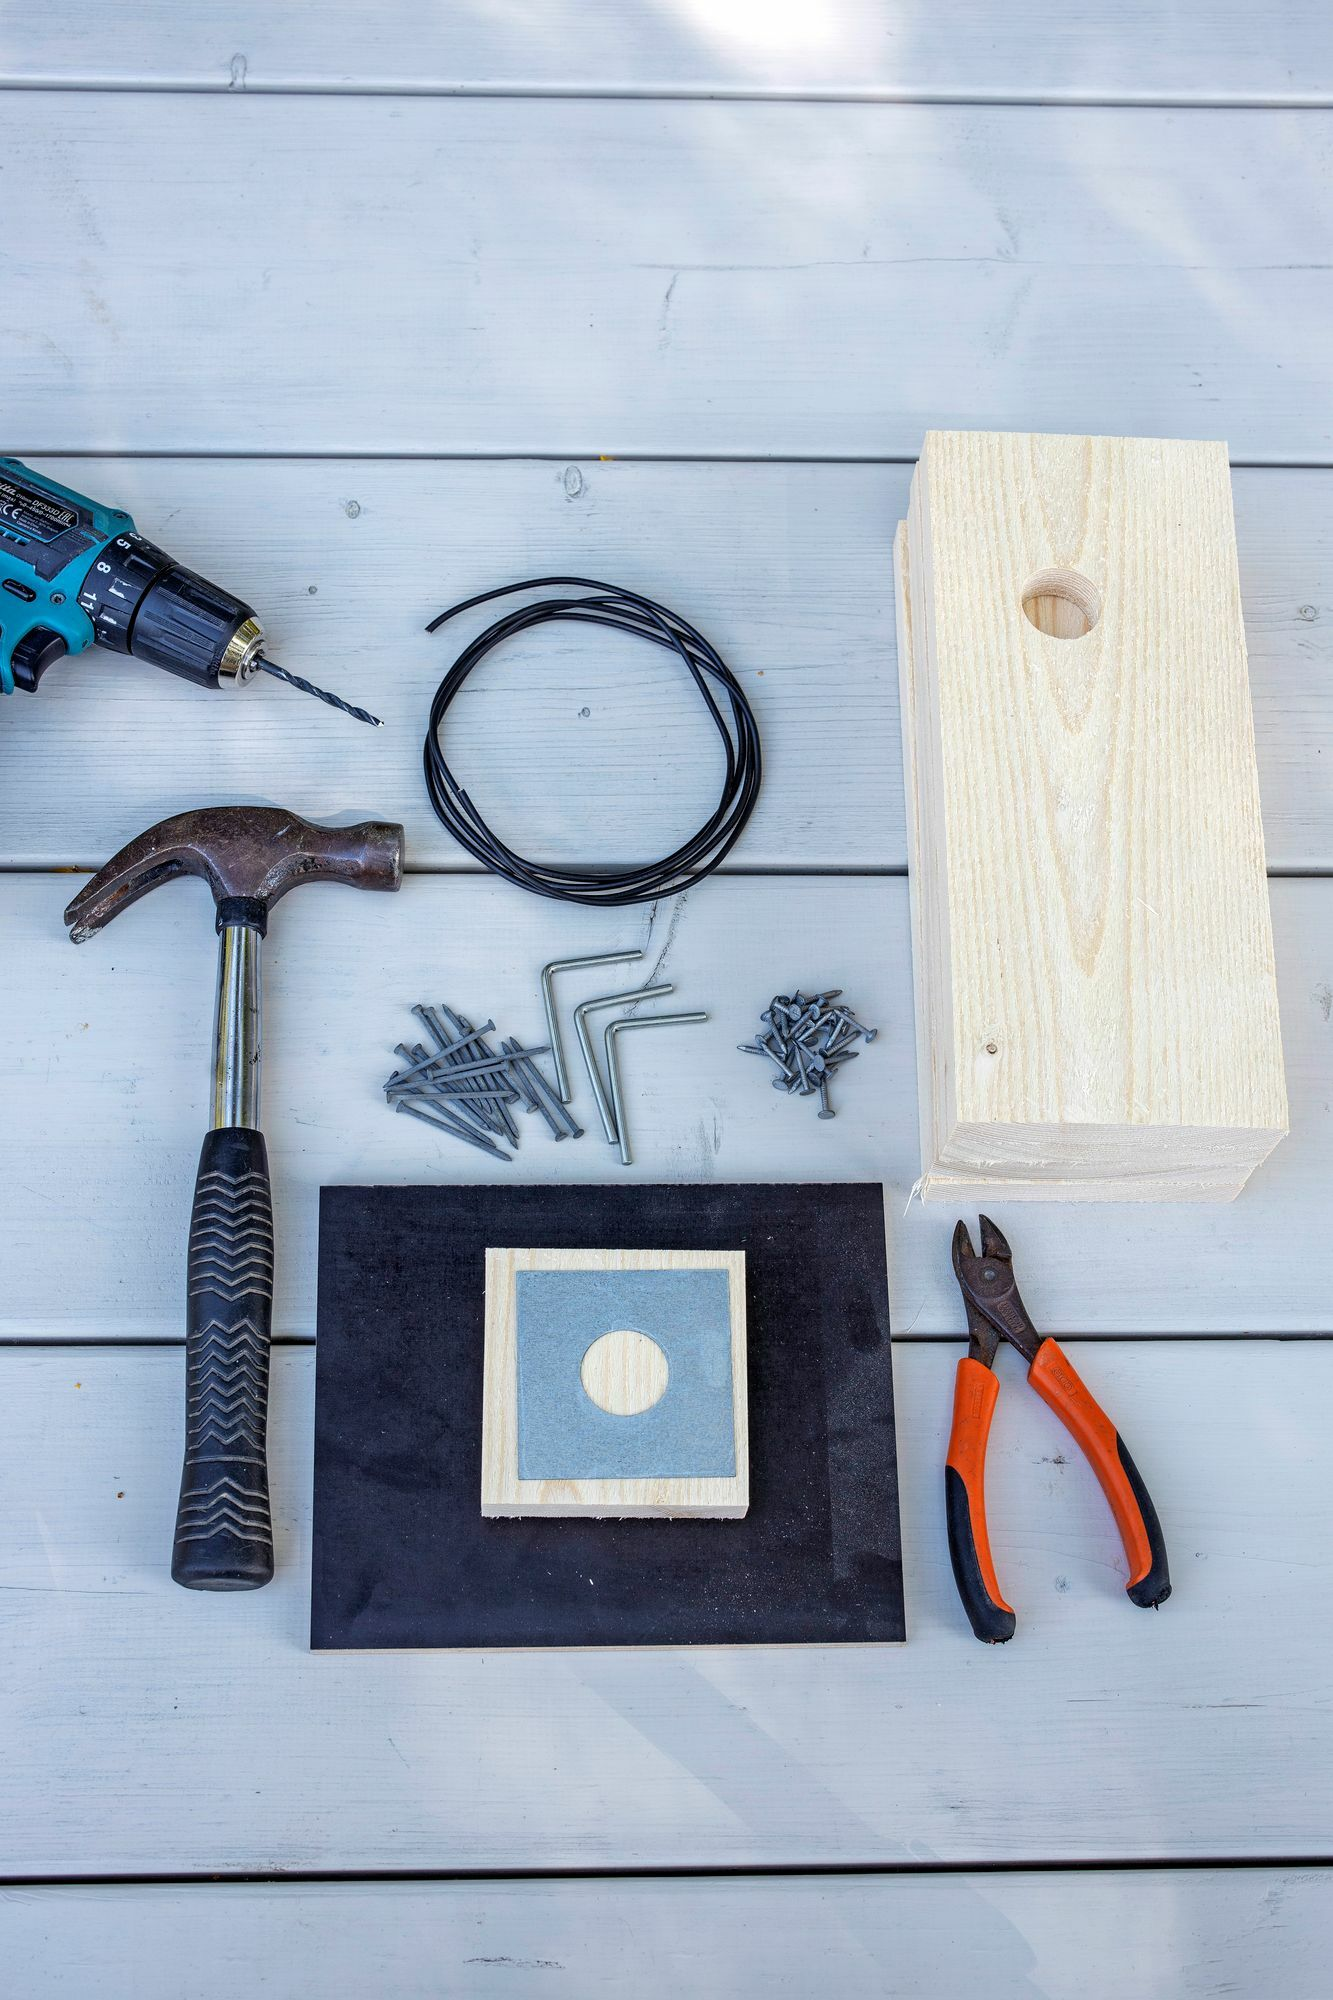 1 & 2. To build a birdhouse, you need a raw board, film faced plywood, hammer, saw, nails, drill, side cutters, protective damper, installation cable as a hanging wire.